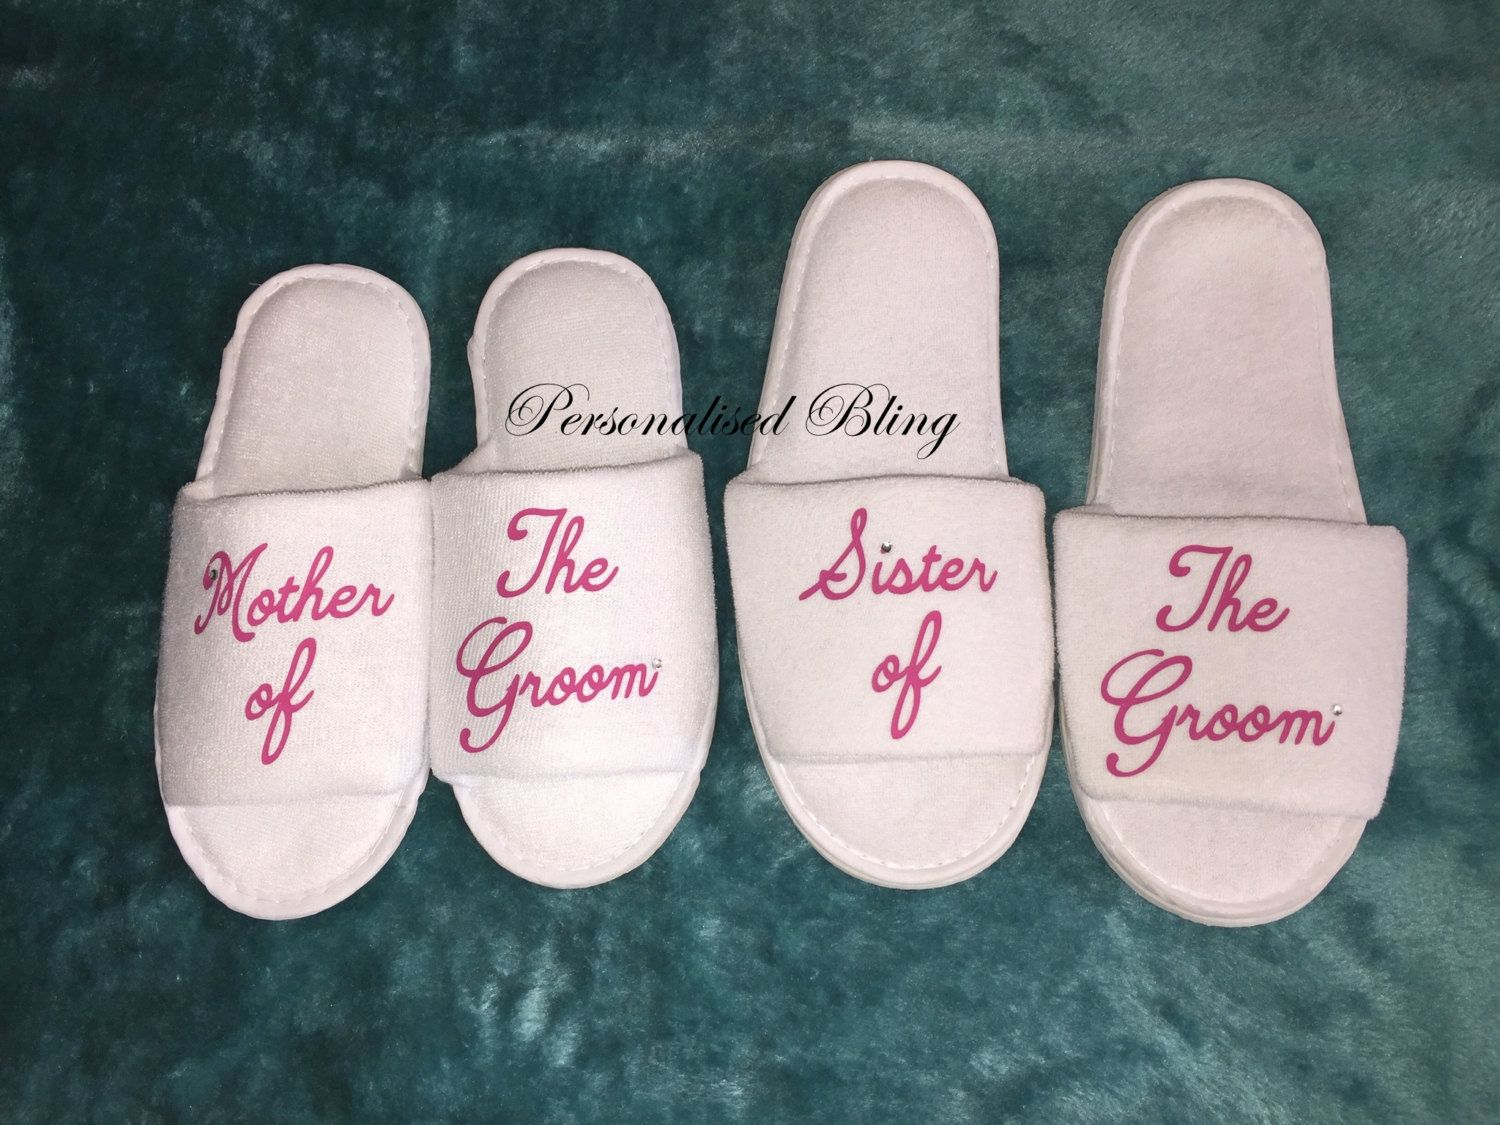 640ec30cc Bride slippers personalised slippers slip ons shose mother bachelorette  slippers sister of the groom mother of the groom slippers white by ...